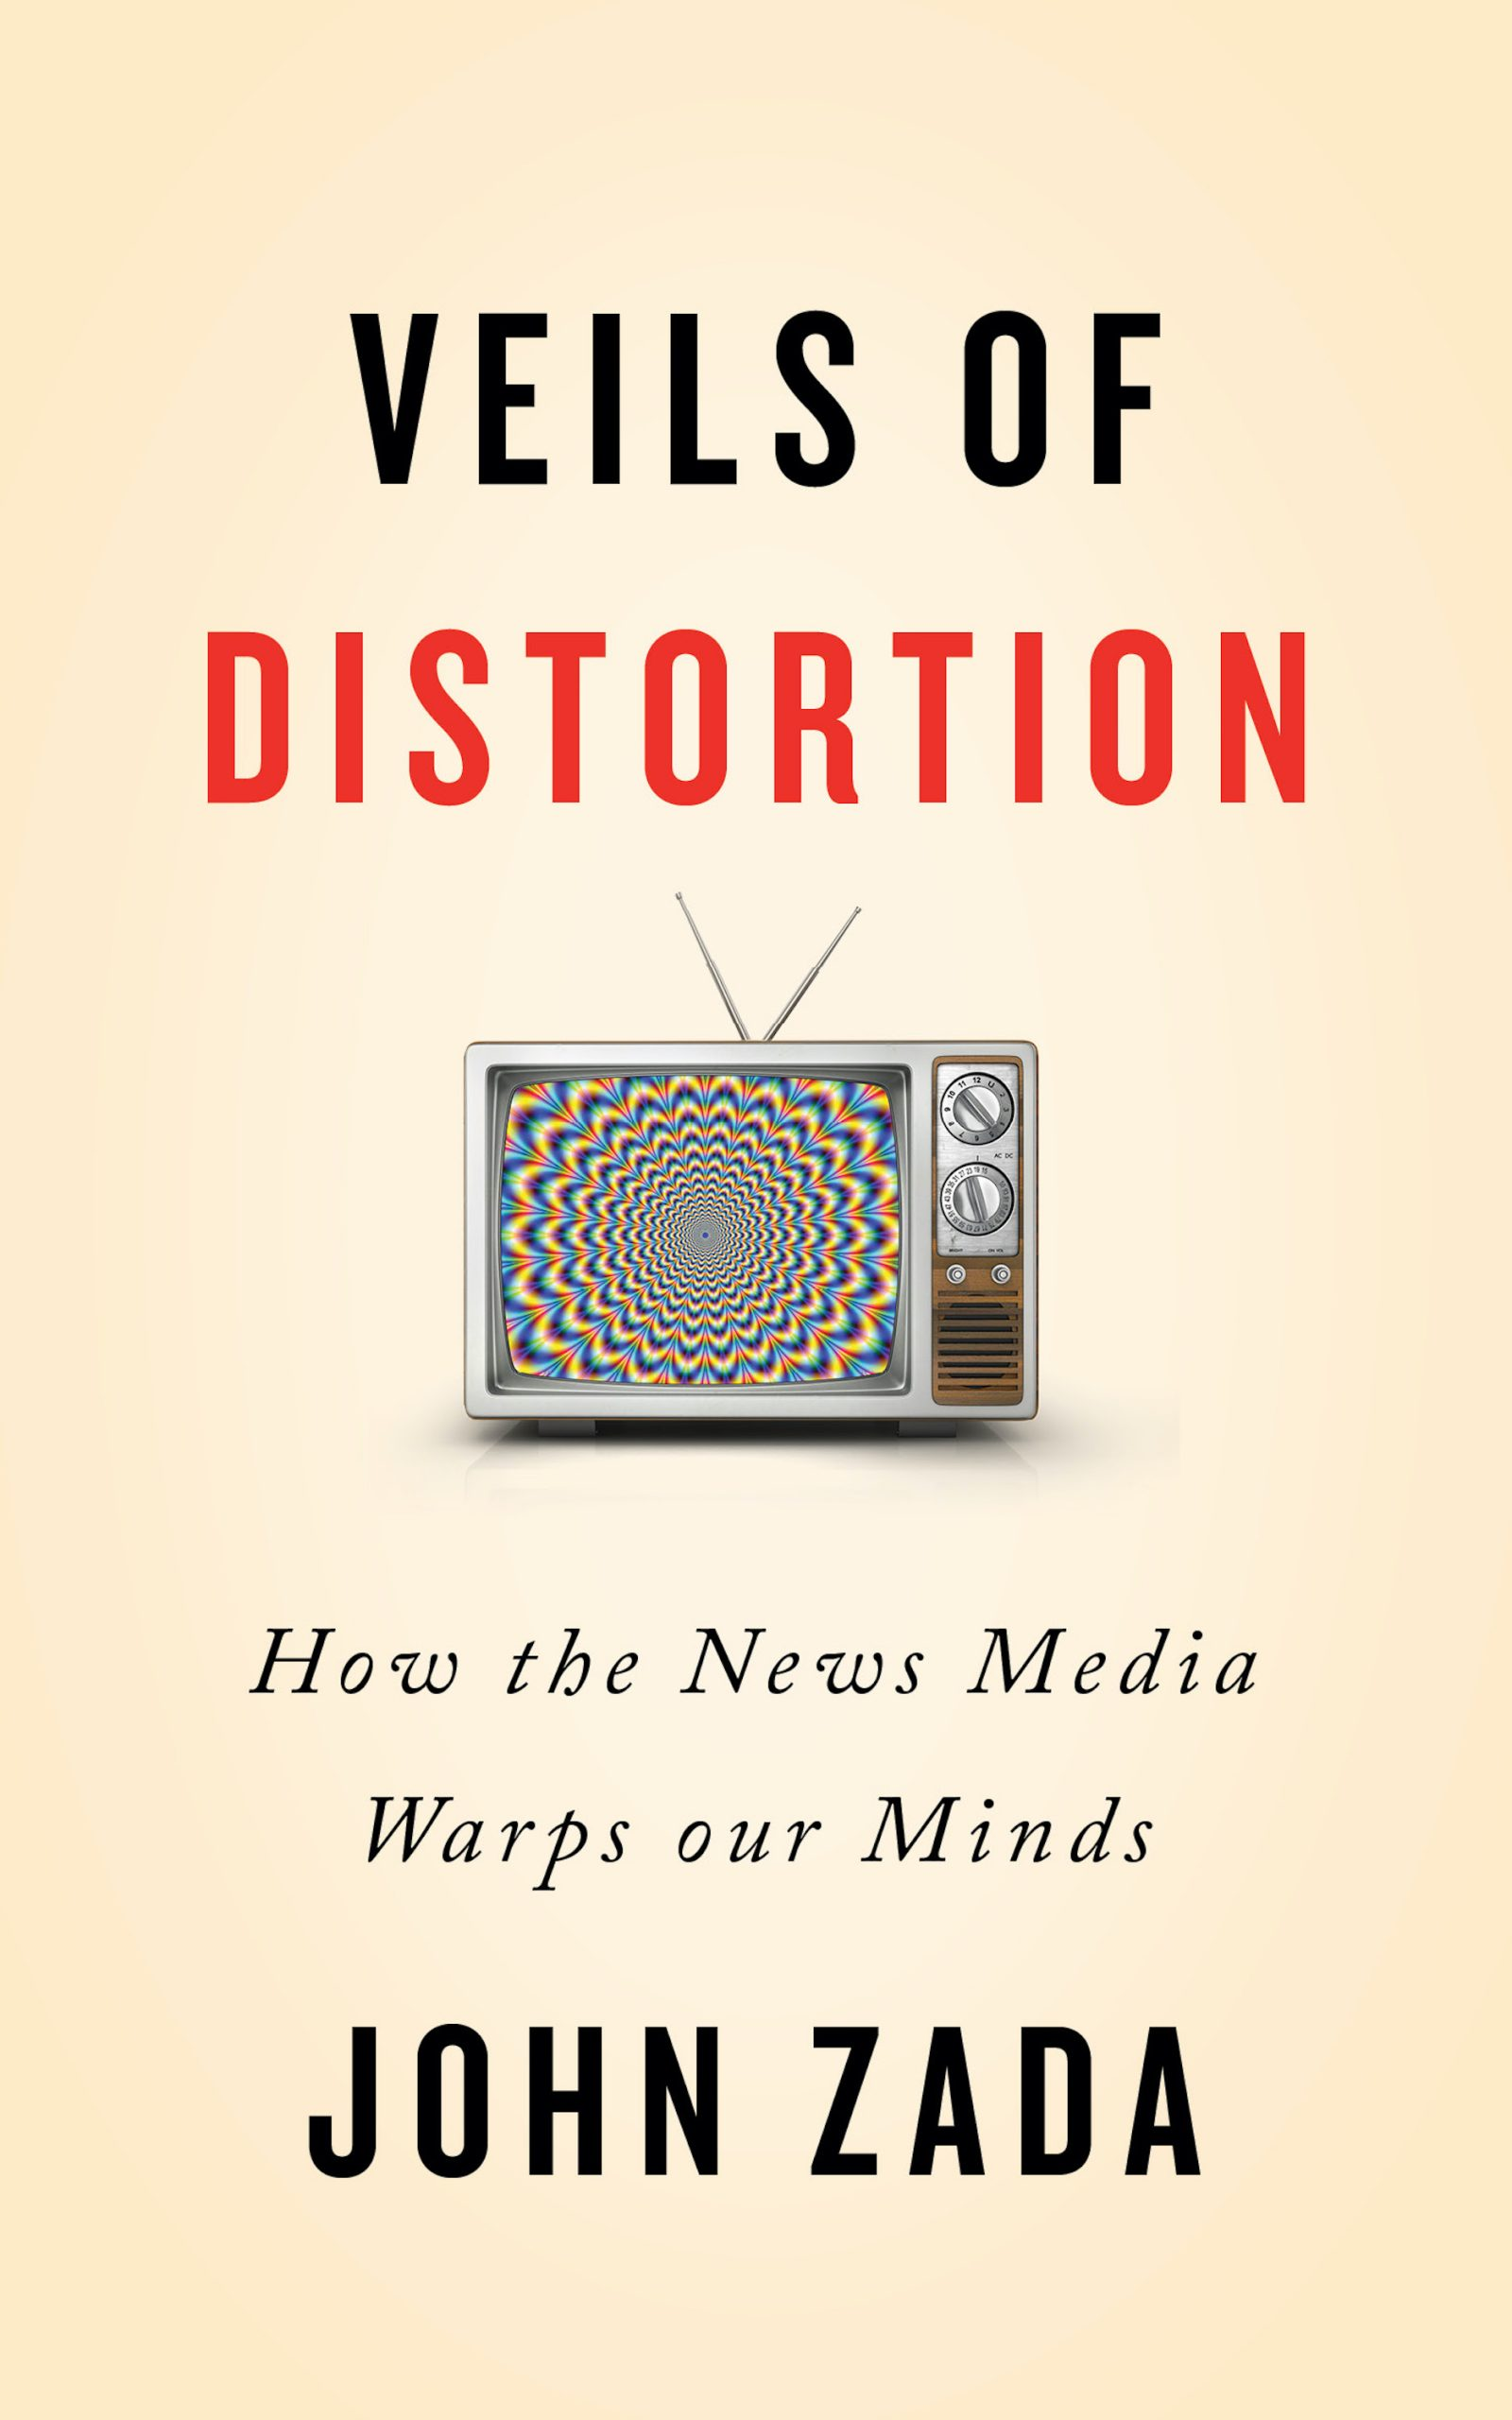 Veils of Distortion - How the News Media Warps Our Minds